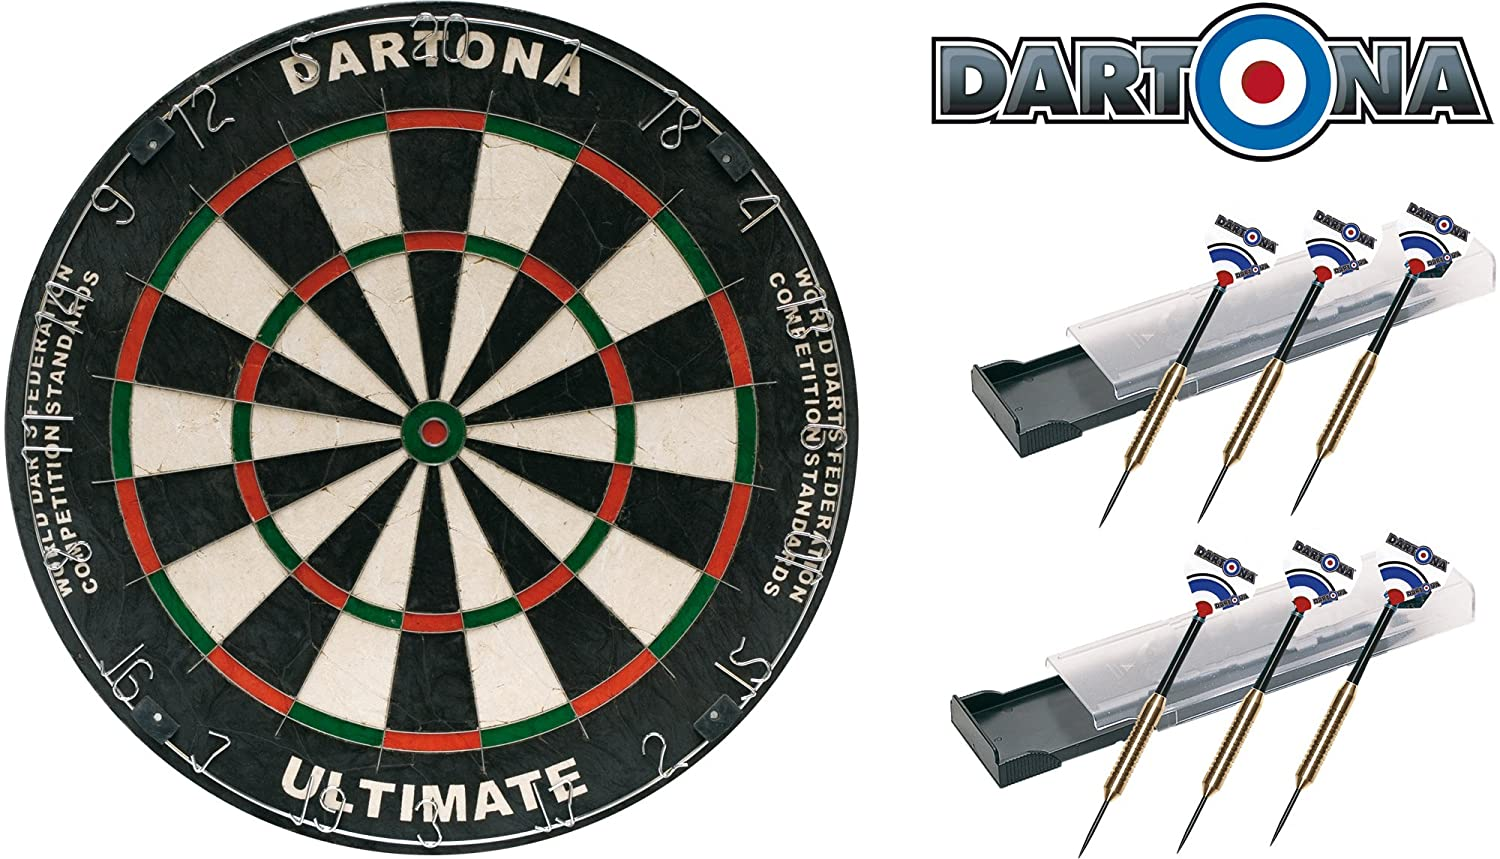 Dartboard Dartona Ultimate inkl. 6 Steeldarts